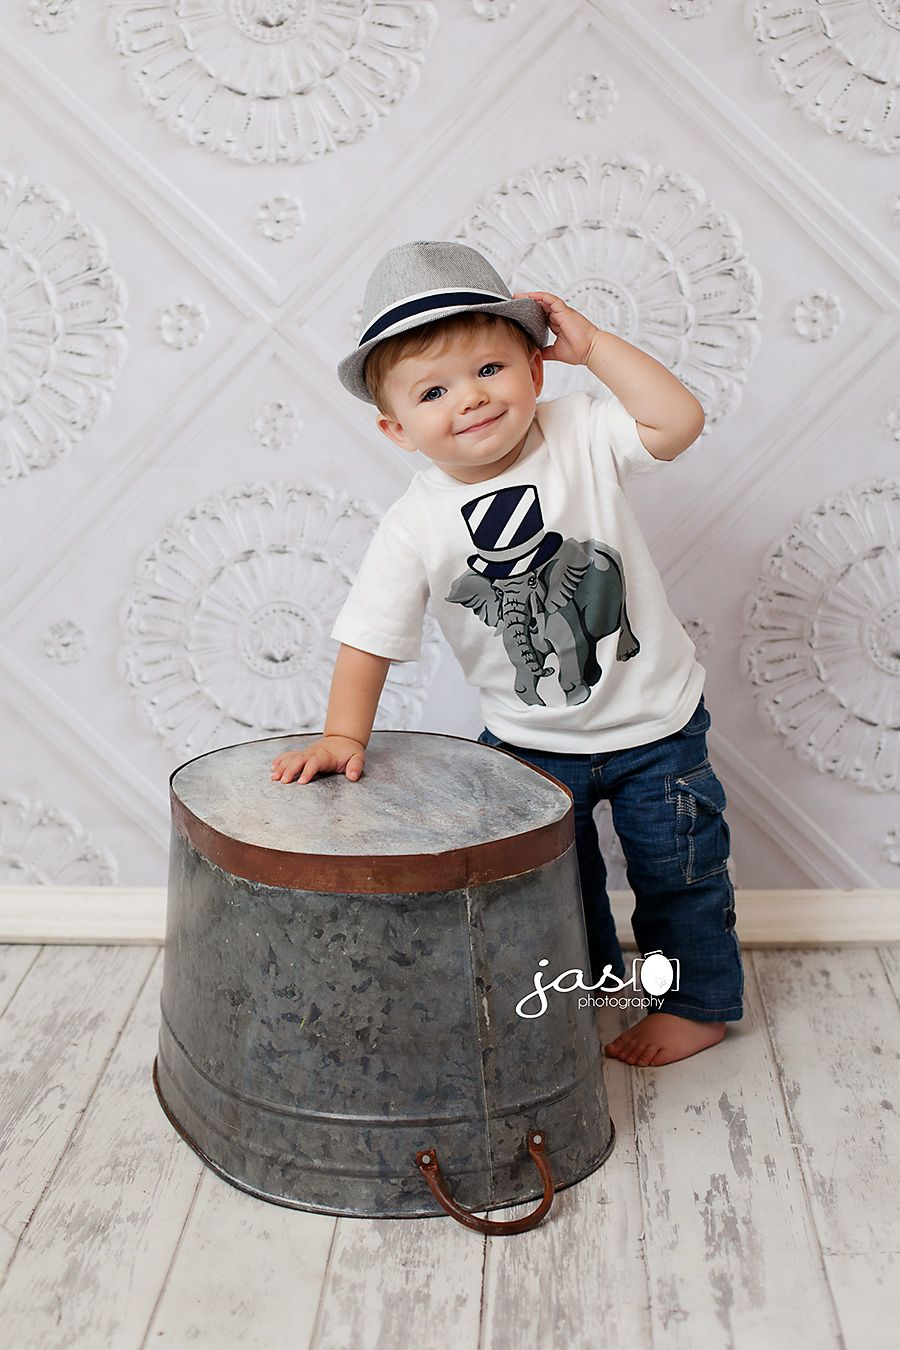 baby photographyvery cute outfit and simple setup for in studio